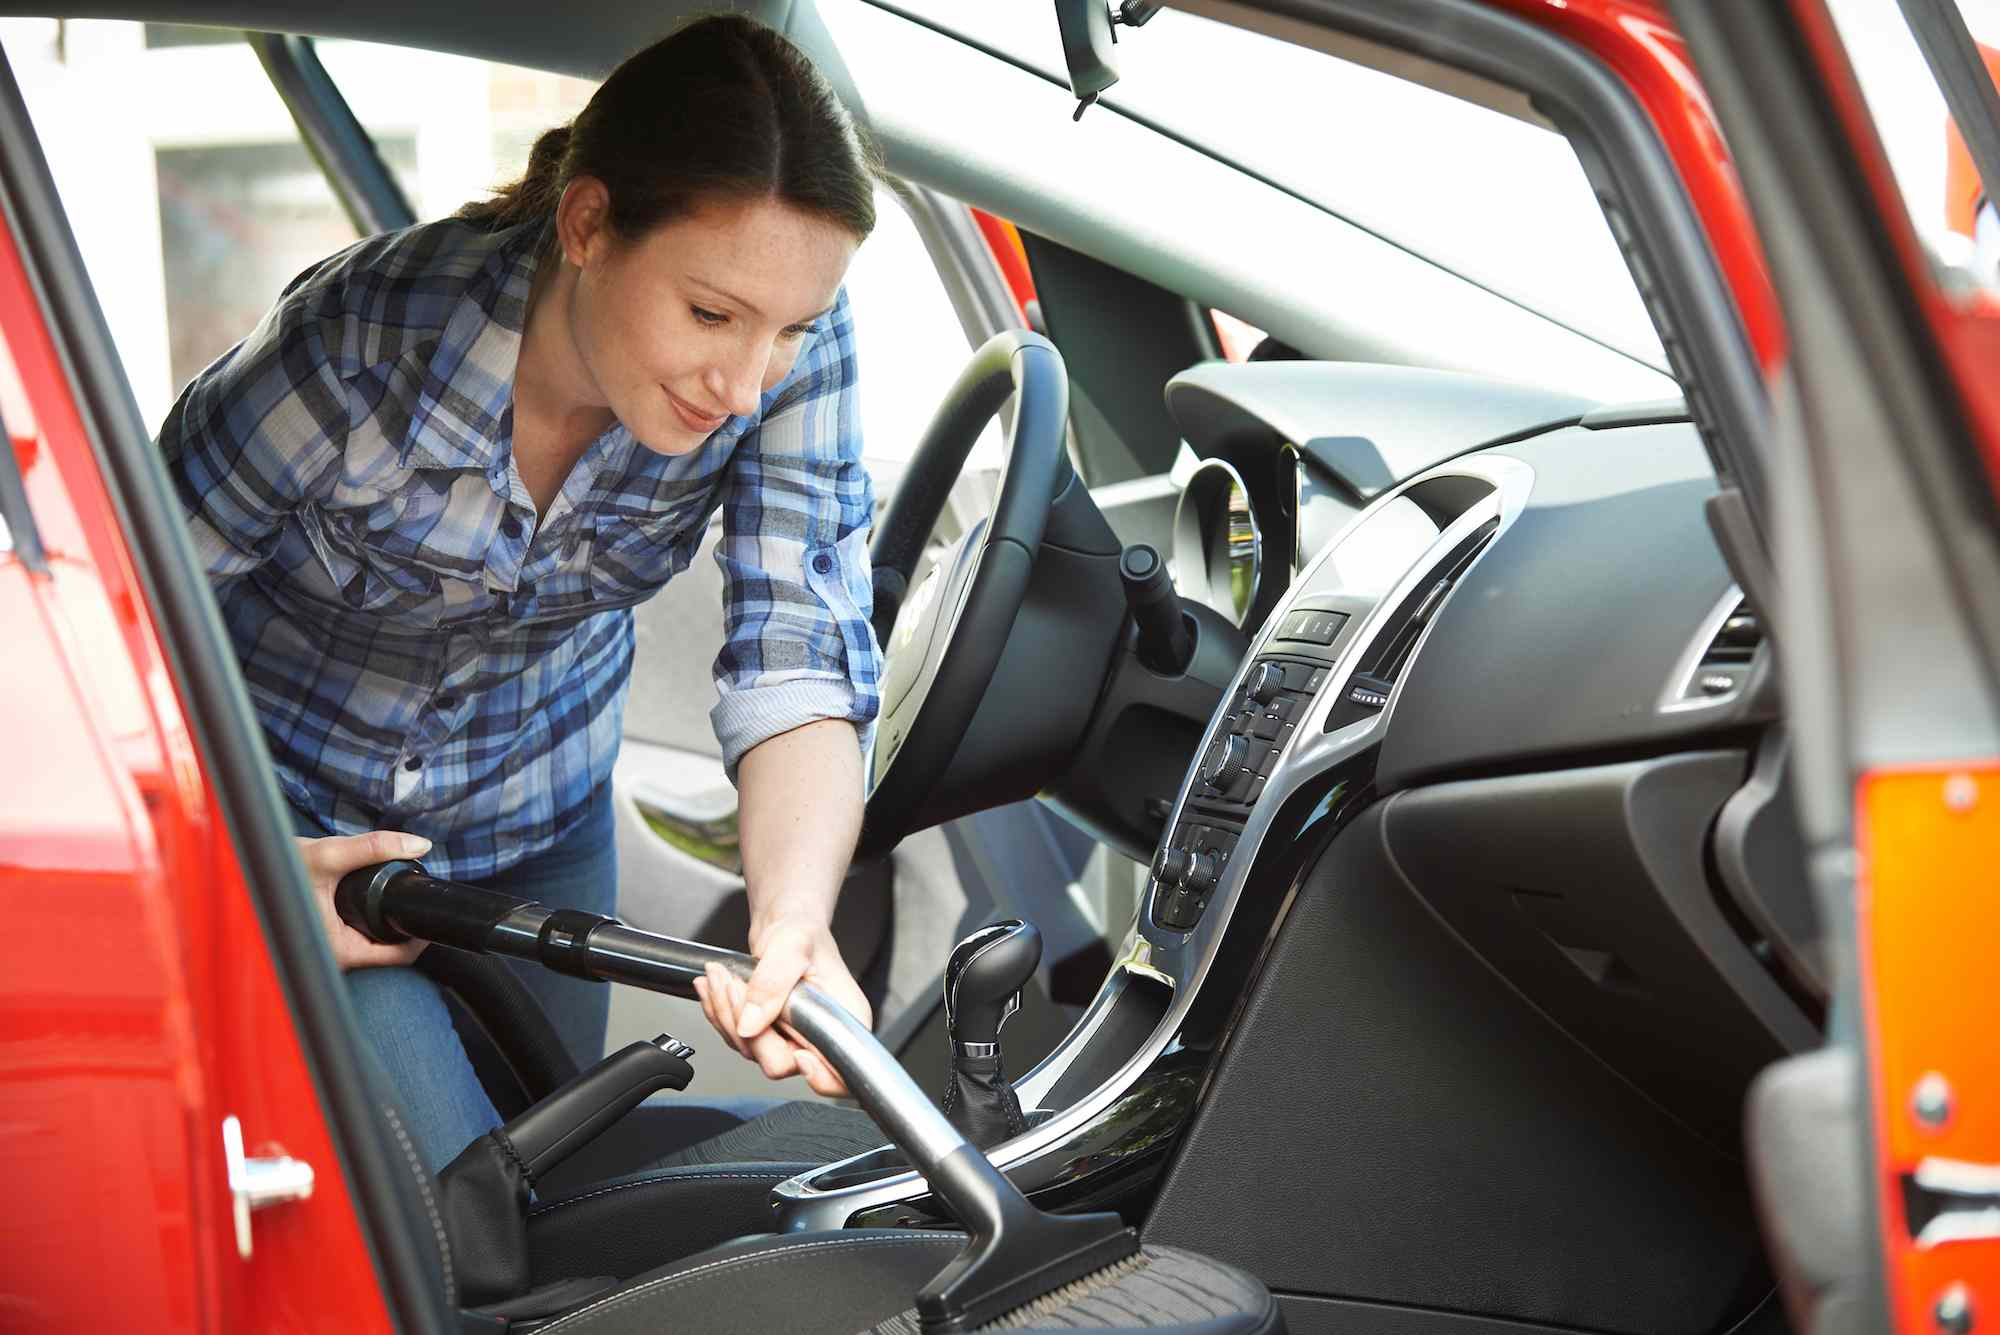 A woman cleans the interior of her car using a vacuum cleaner.